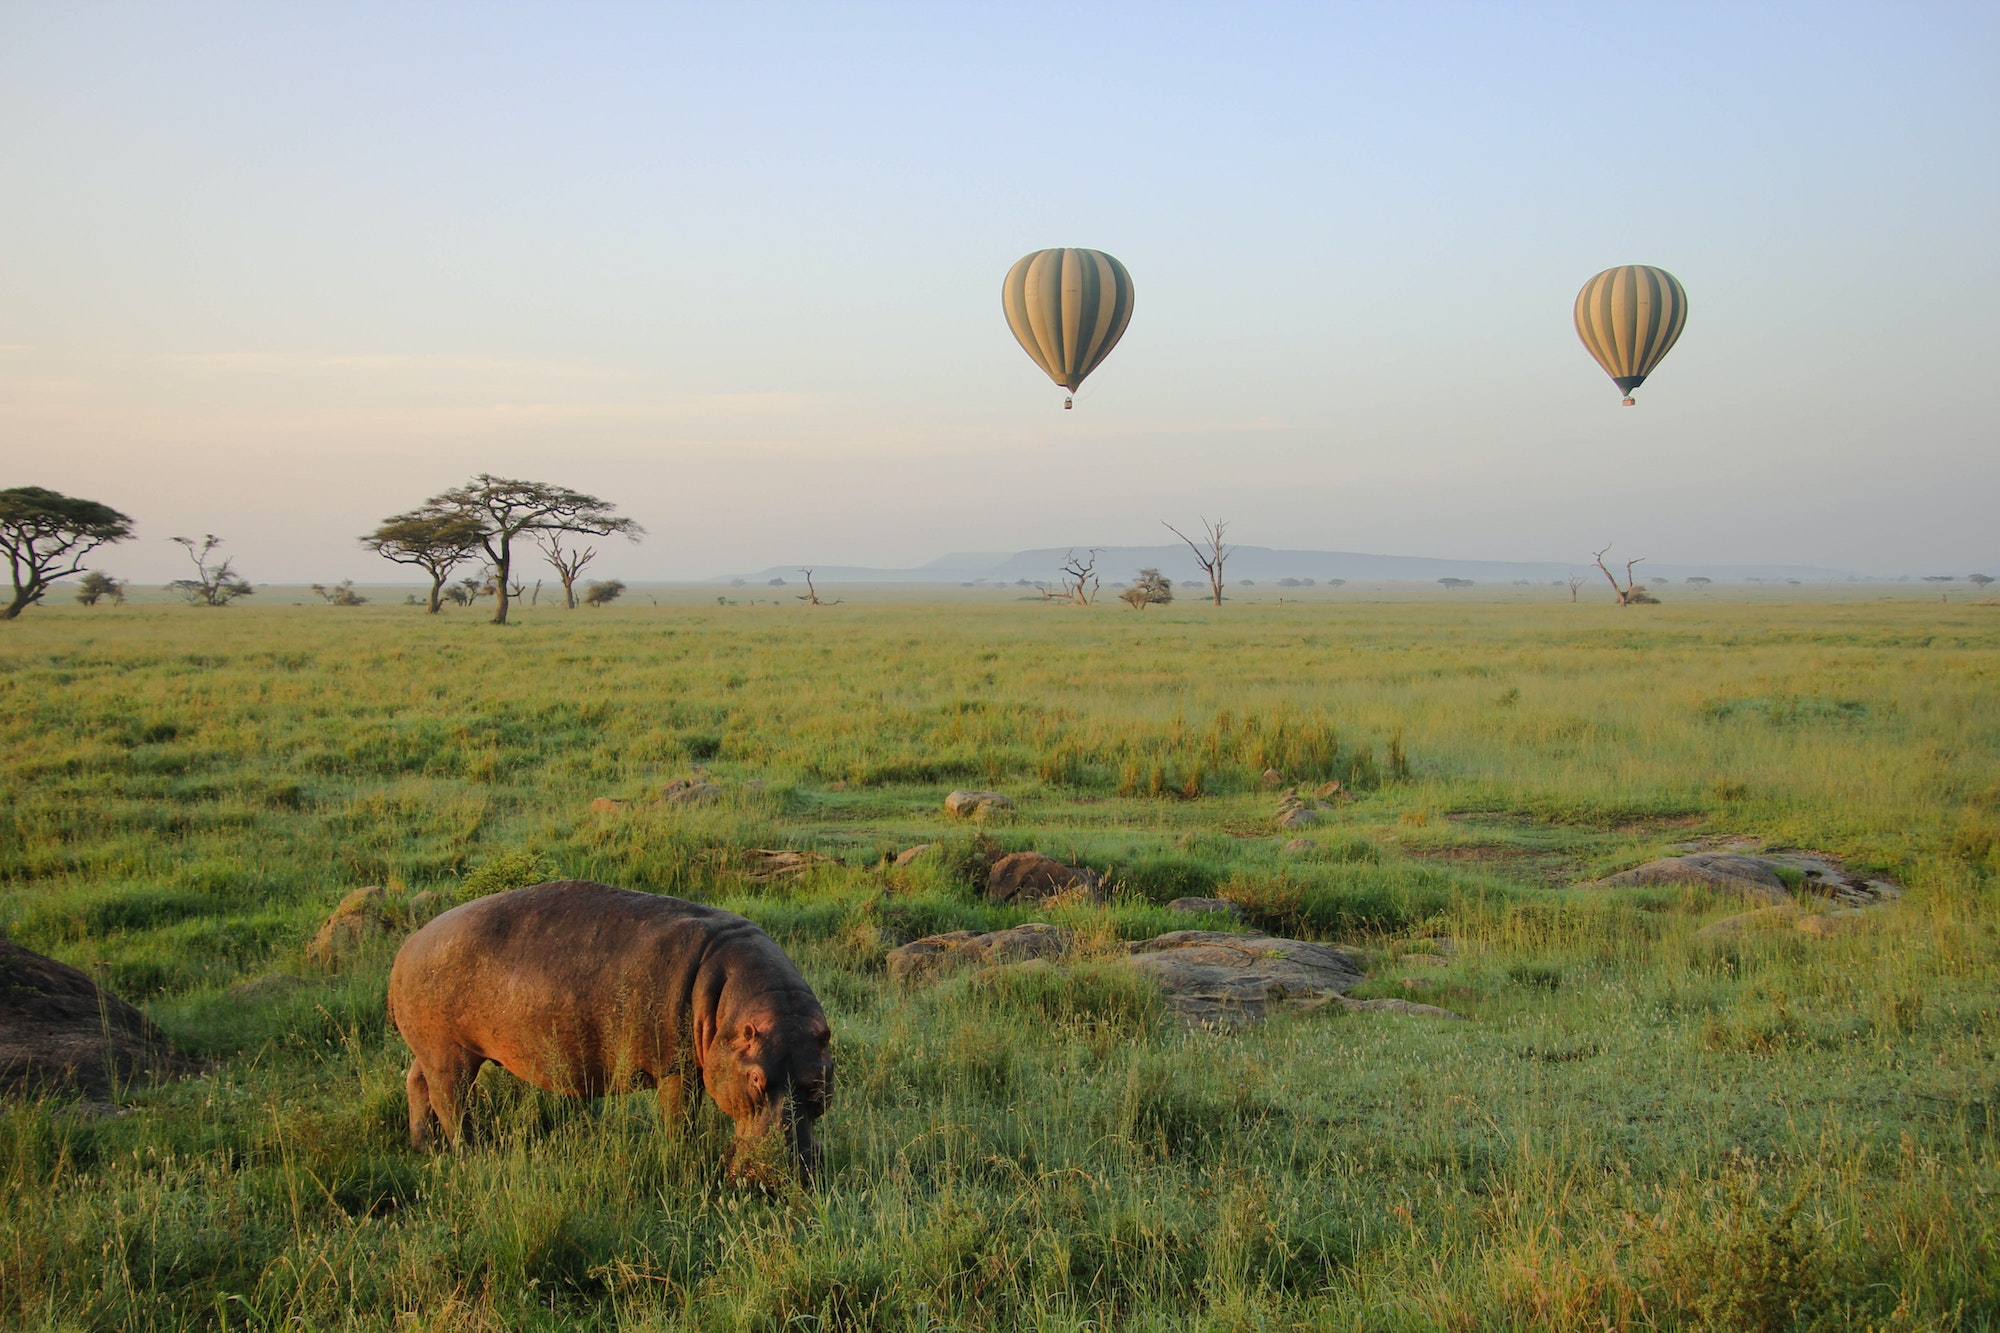 Serengeti National Park is renowned for its abundance of wildlife and is considered Tanzania's oldest national park.